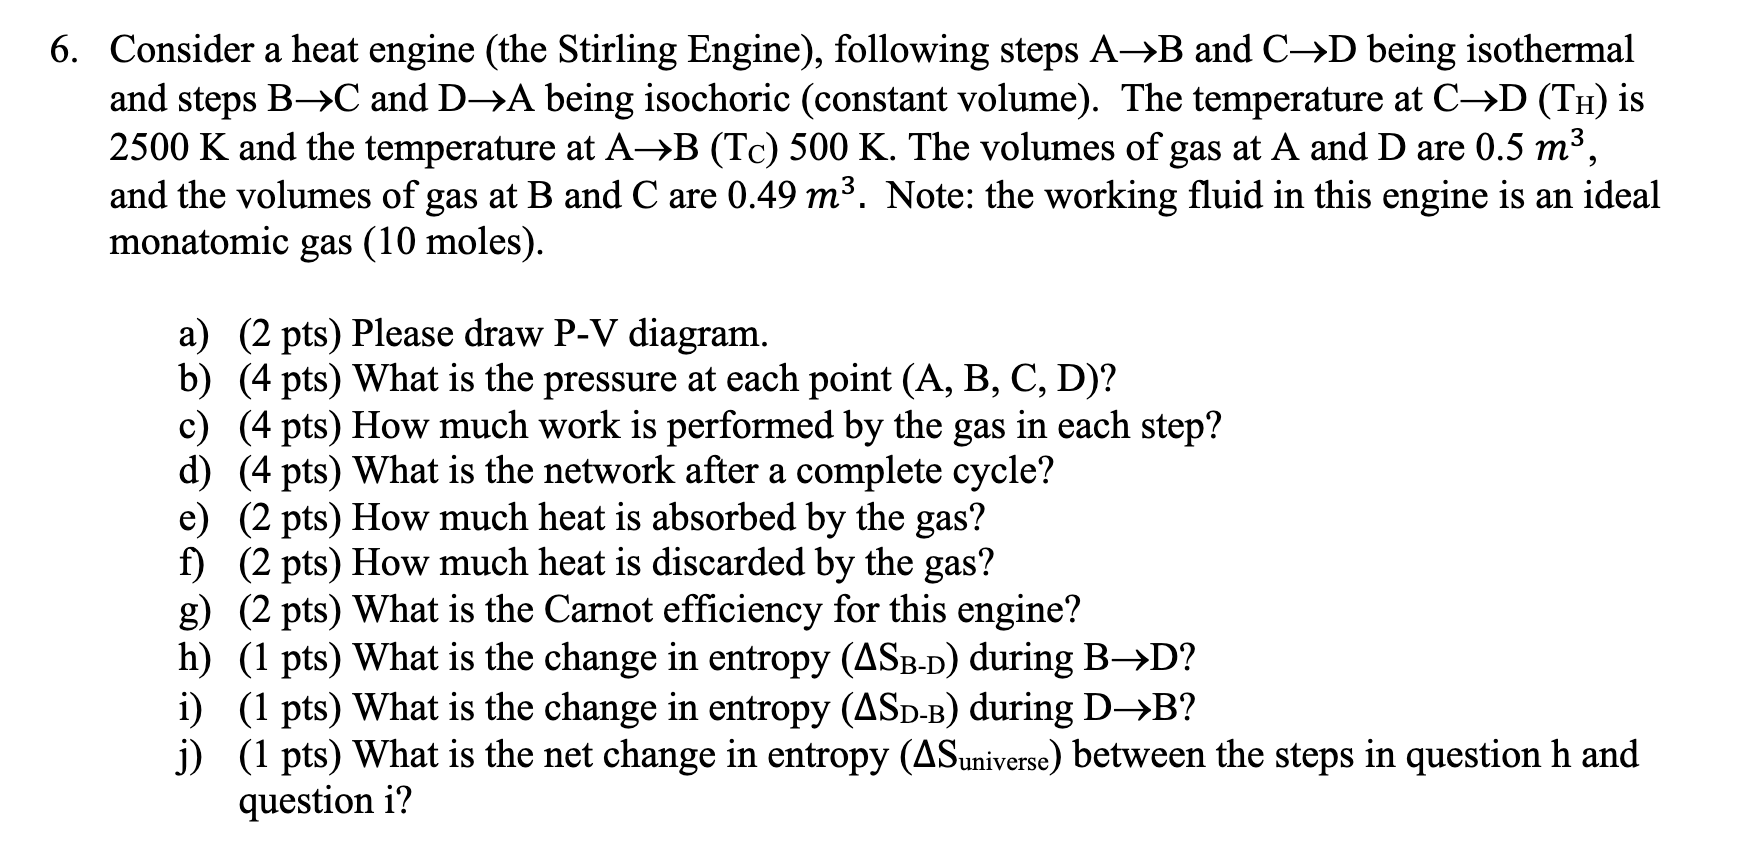 6. Consider a heat engine (the Stirling Engine), following steps A B and C D being isothermal and steps B-C and D->A being is